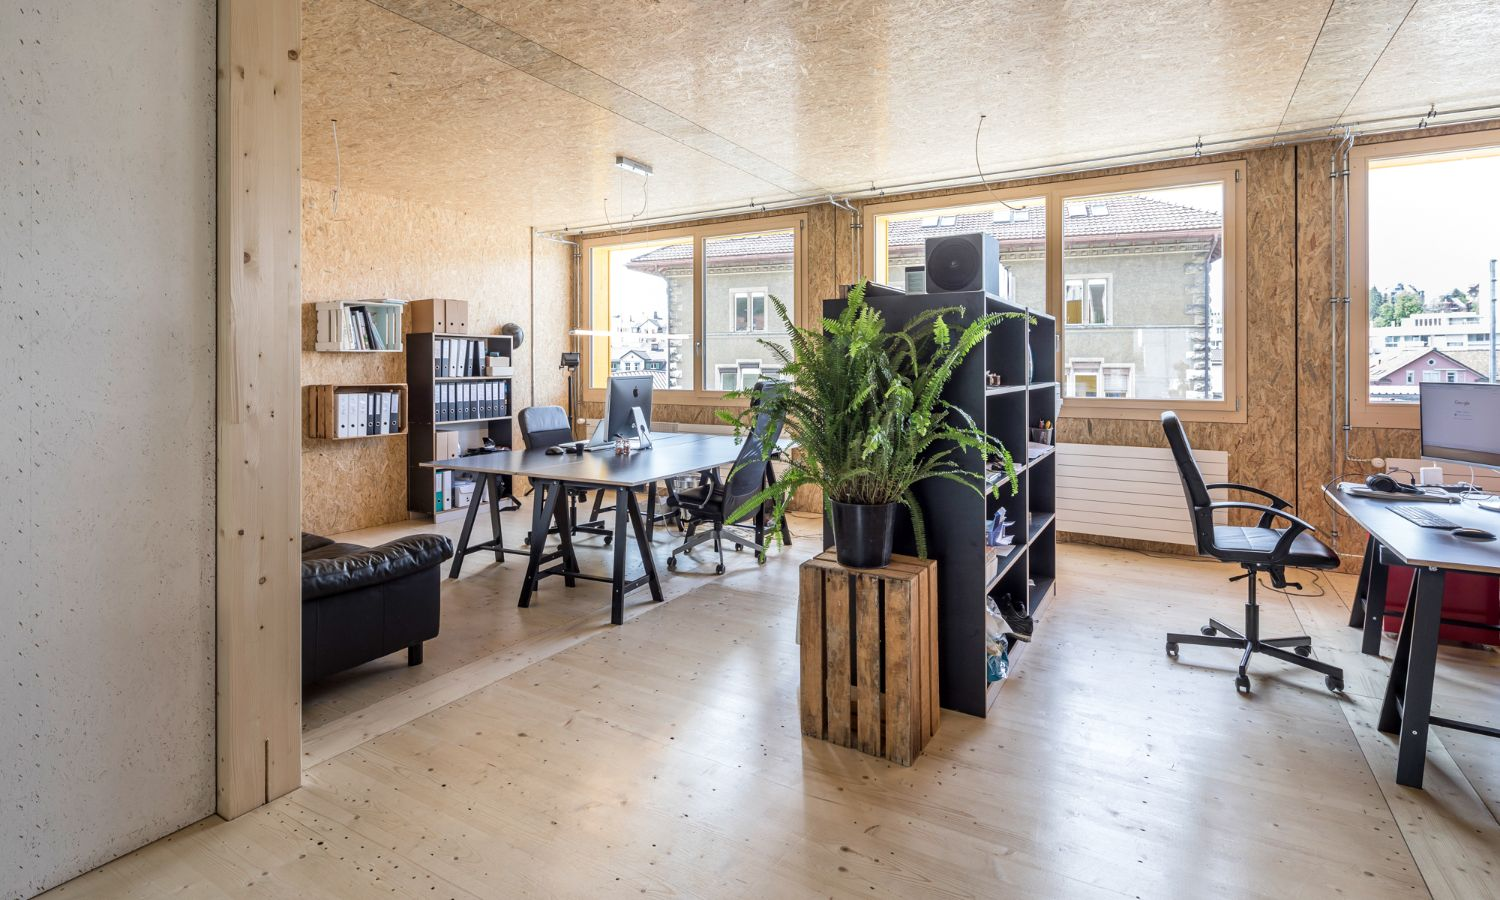 Photograph of an office interior finished entirely in wood with modern furnishing in the Lattich building in St. Gallen